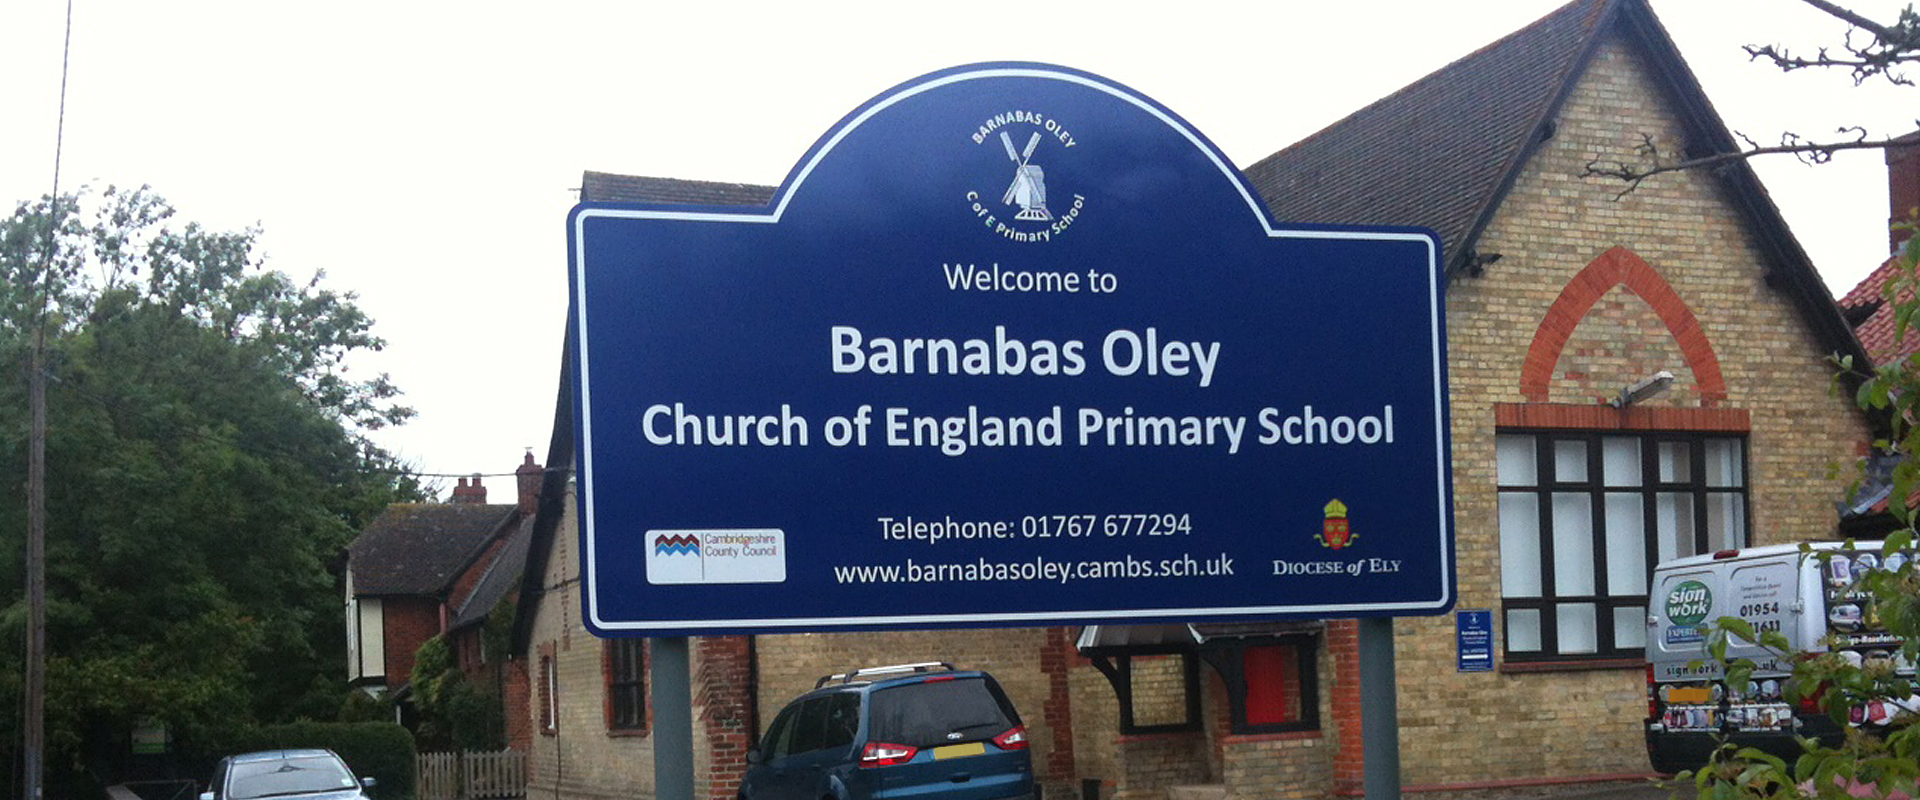 Signage in front of a school